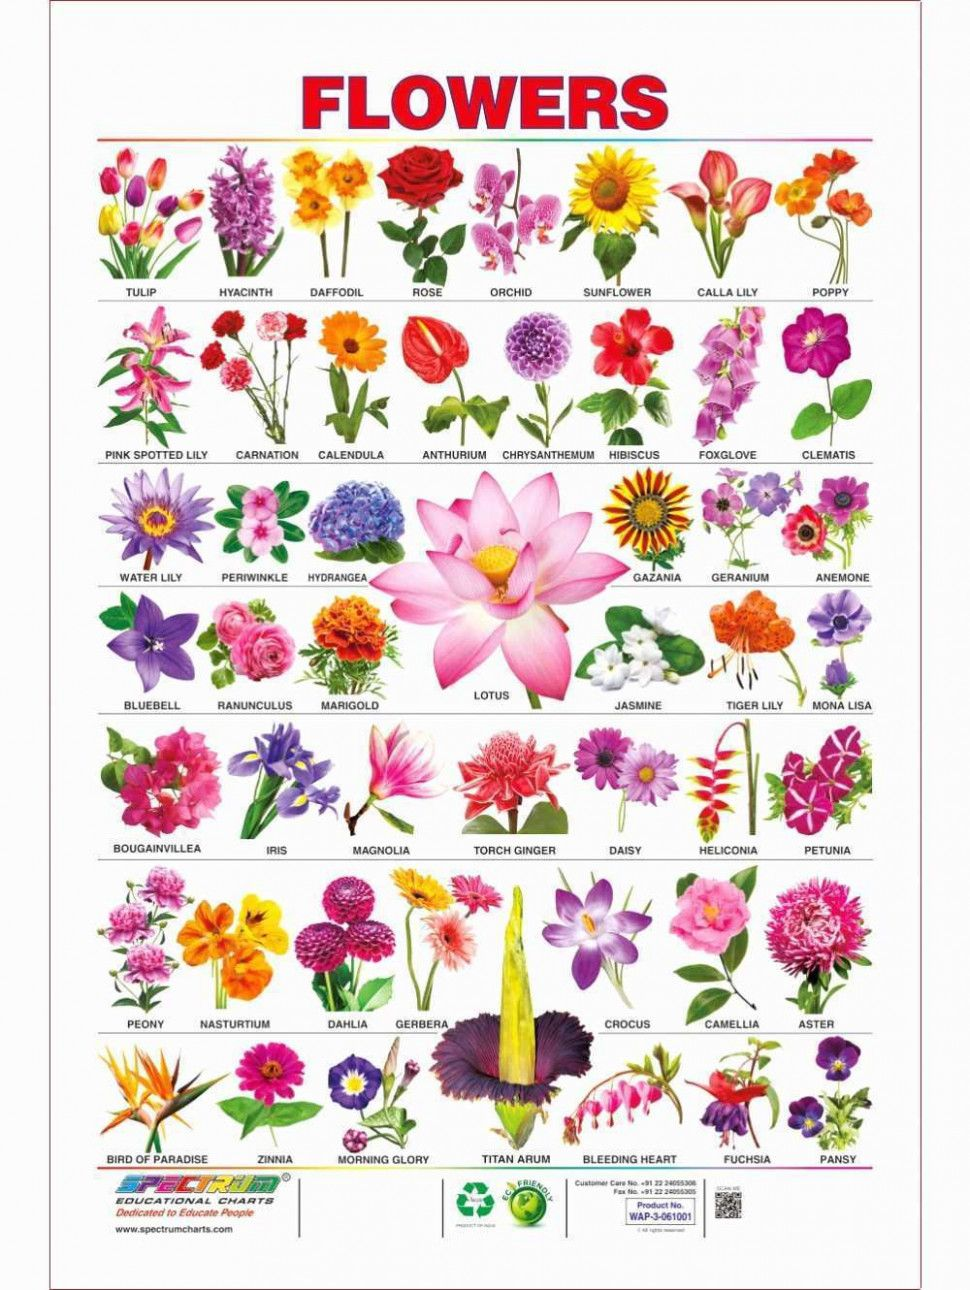 List Of All Flowers Best Of 23 Flower And Names List Pelfusion Flowers Name List Pretty Flower Names Flower Images With Name Flower Names